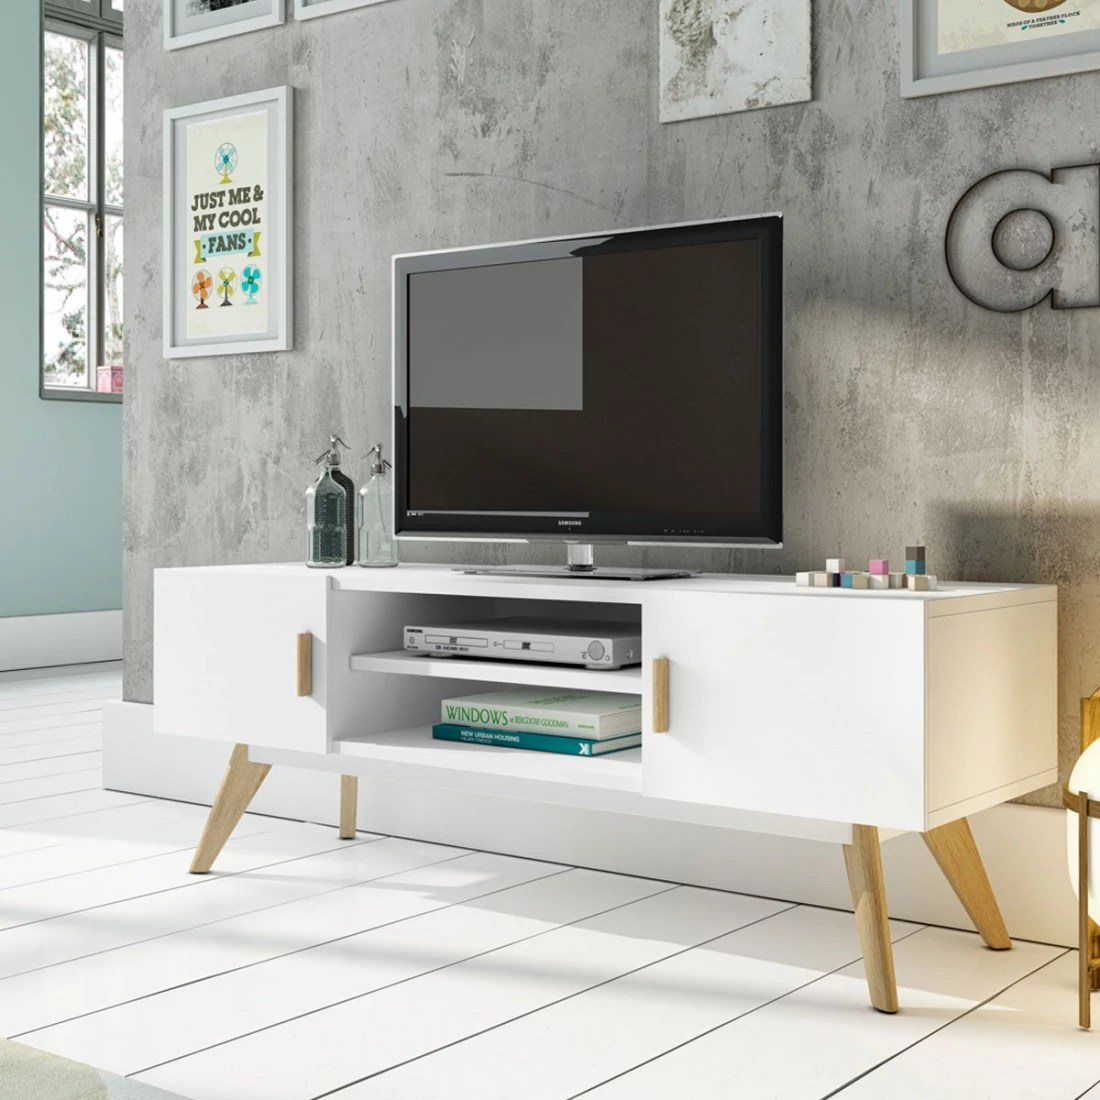 Meuble Tv Pied Compas Meuble Tv Design Collection Compas 120x40 2portes Par Zendart Sélection